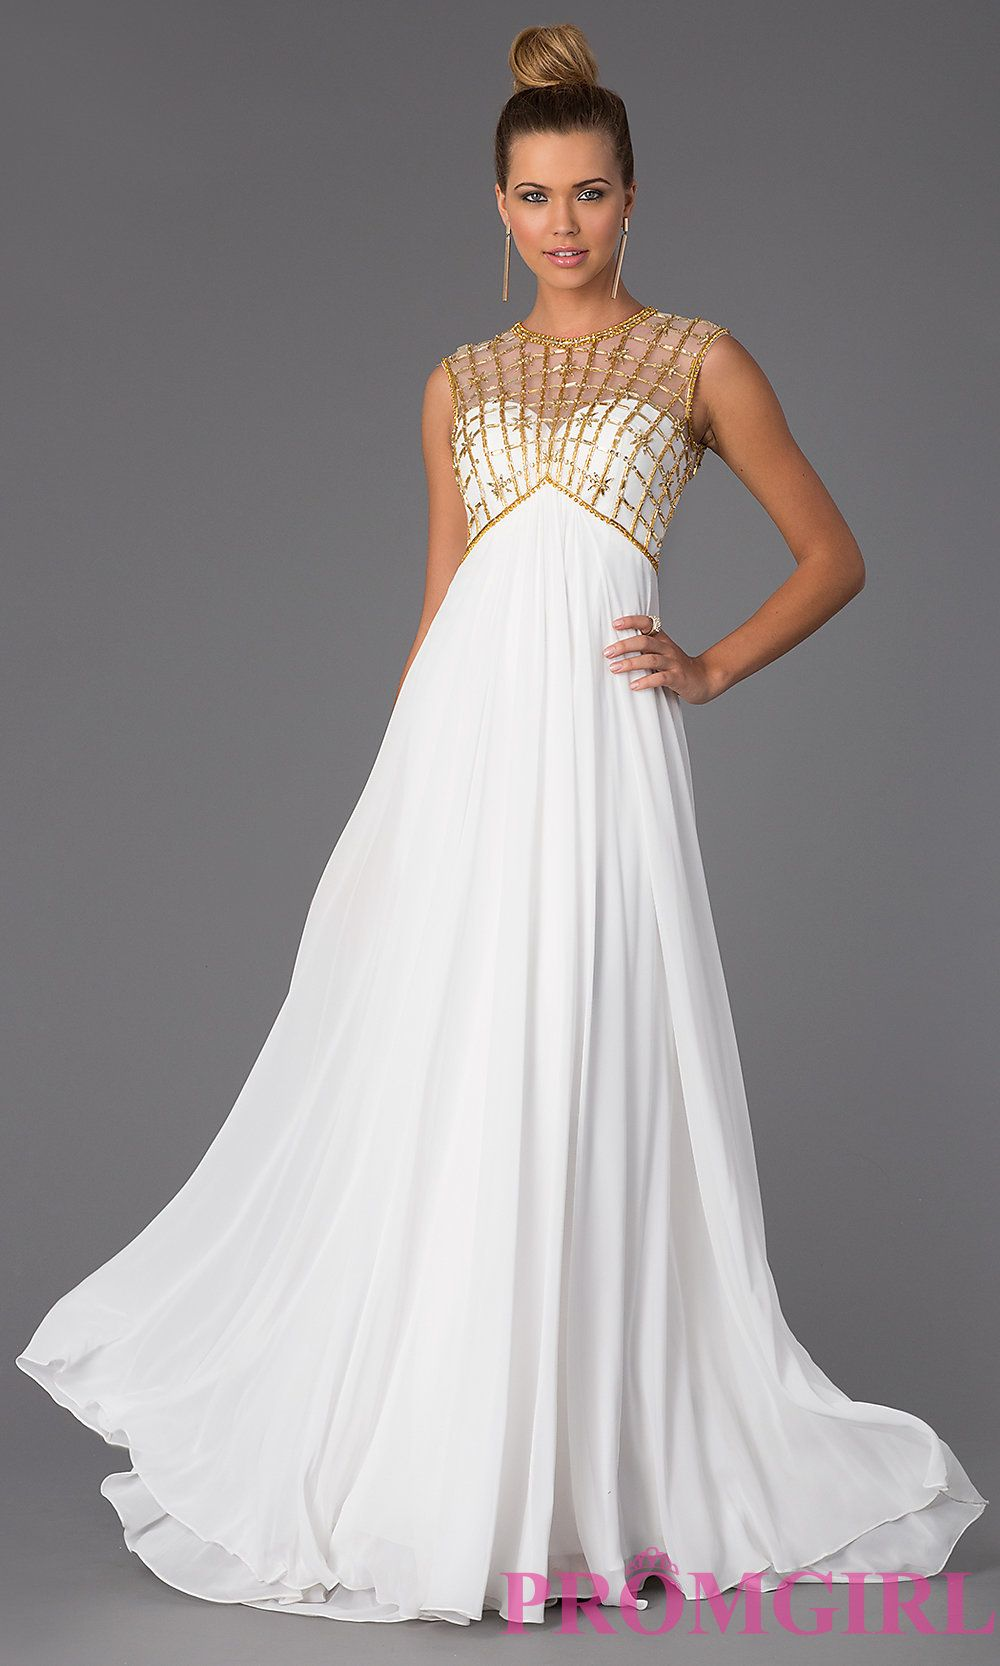 Prom Dresses, Plus Size Dresses, Prom Shoes: High Neck Floor Length ...